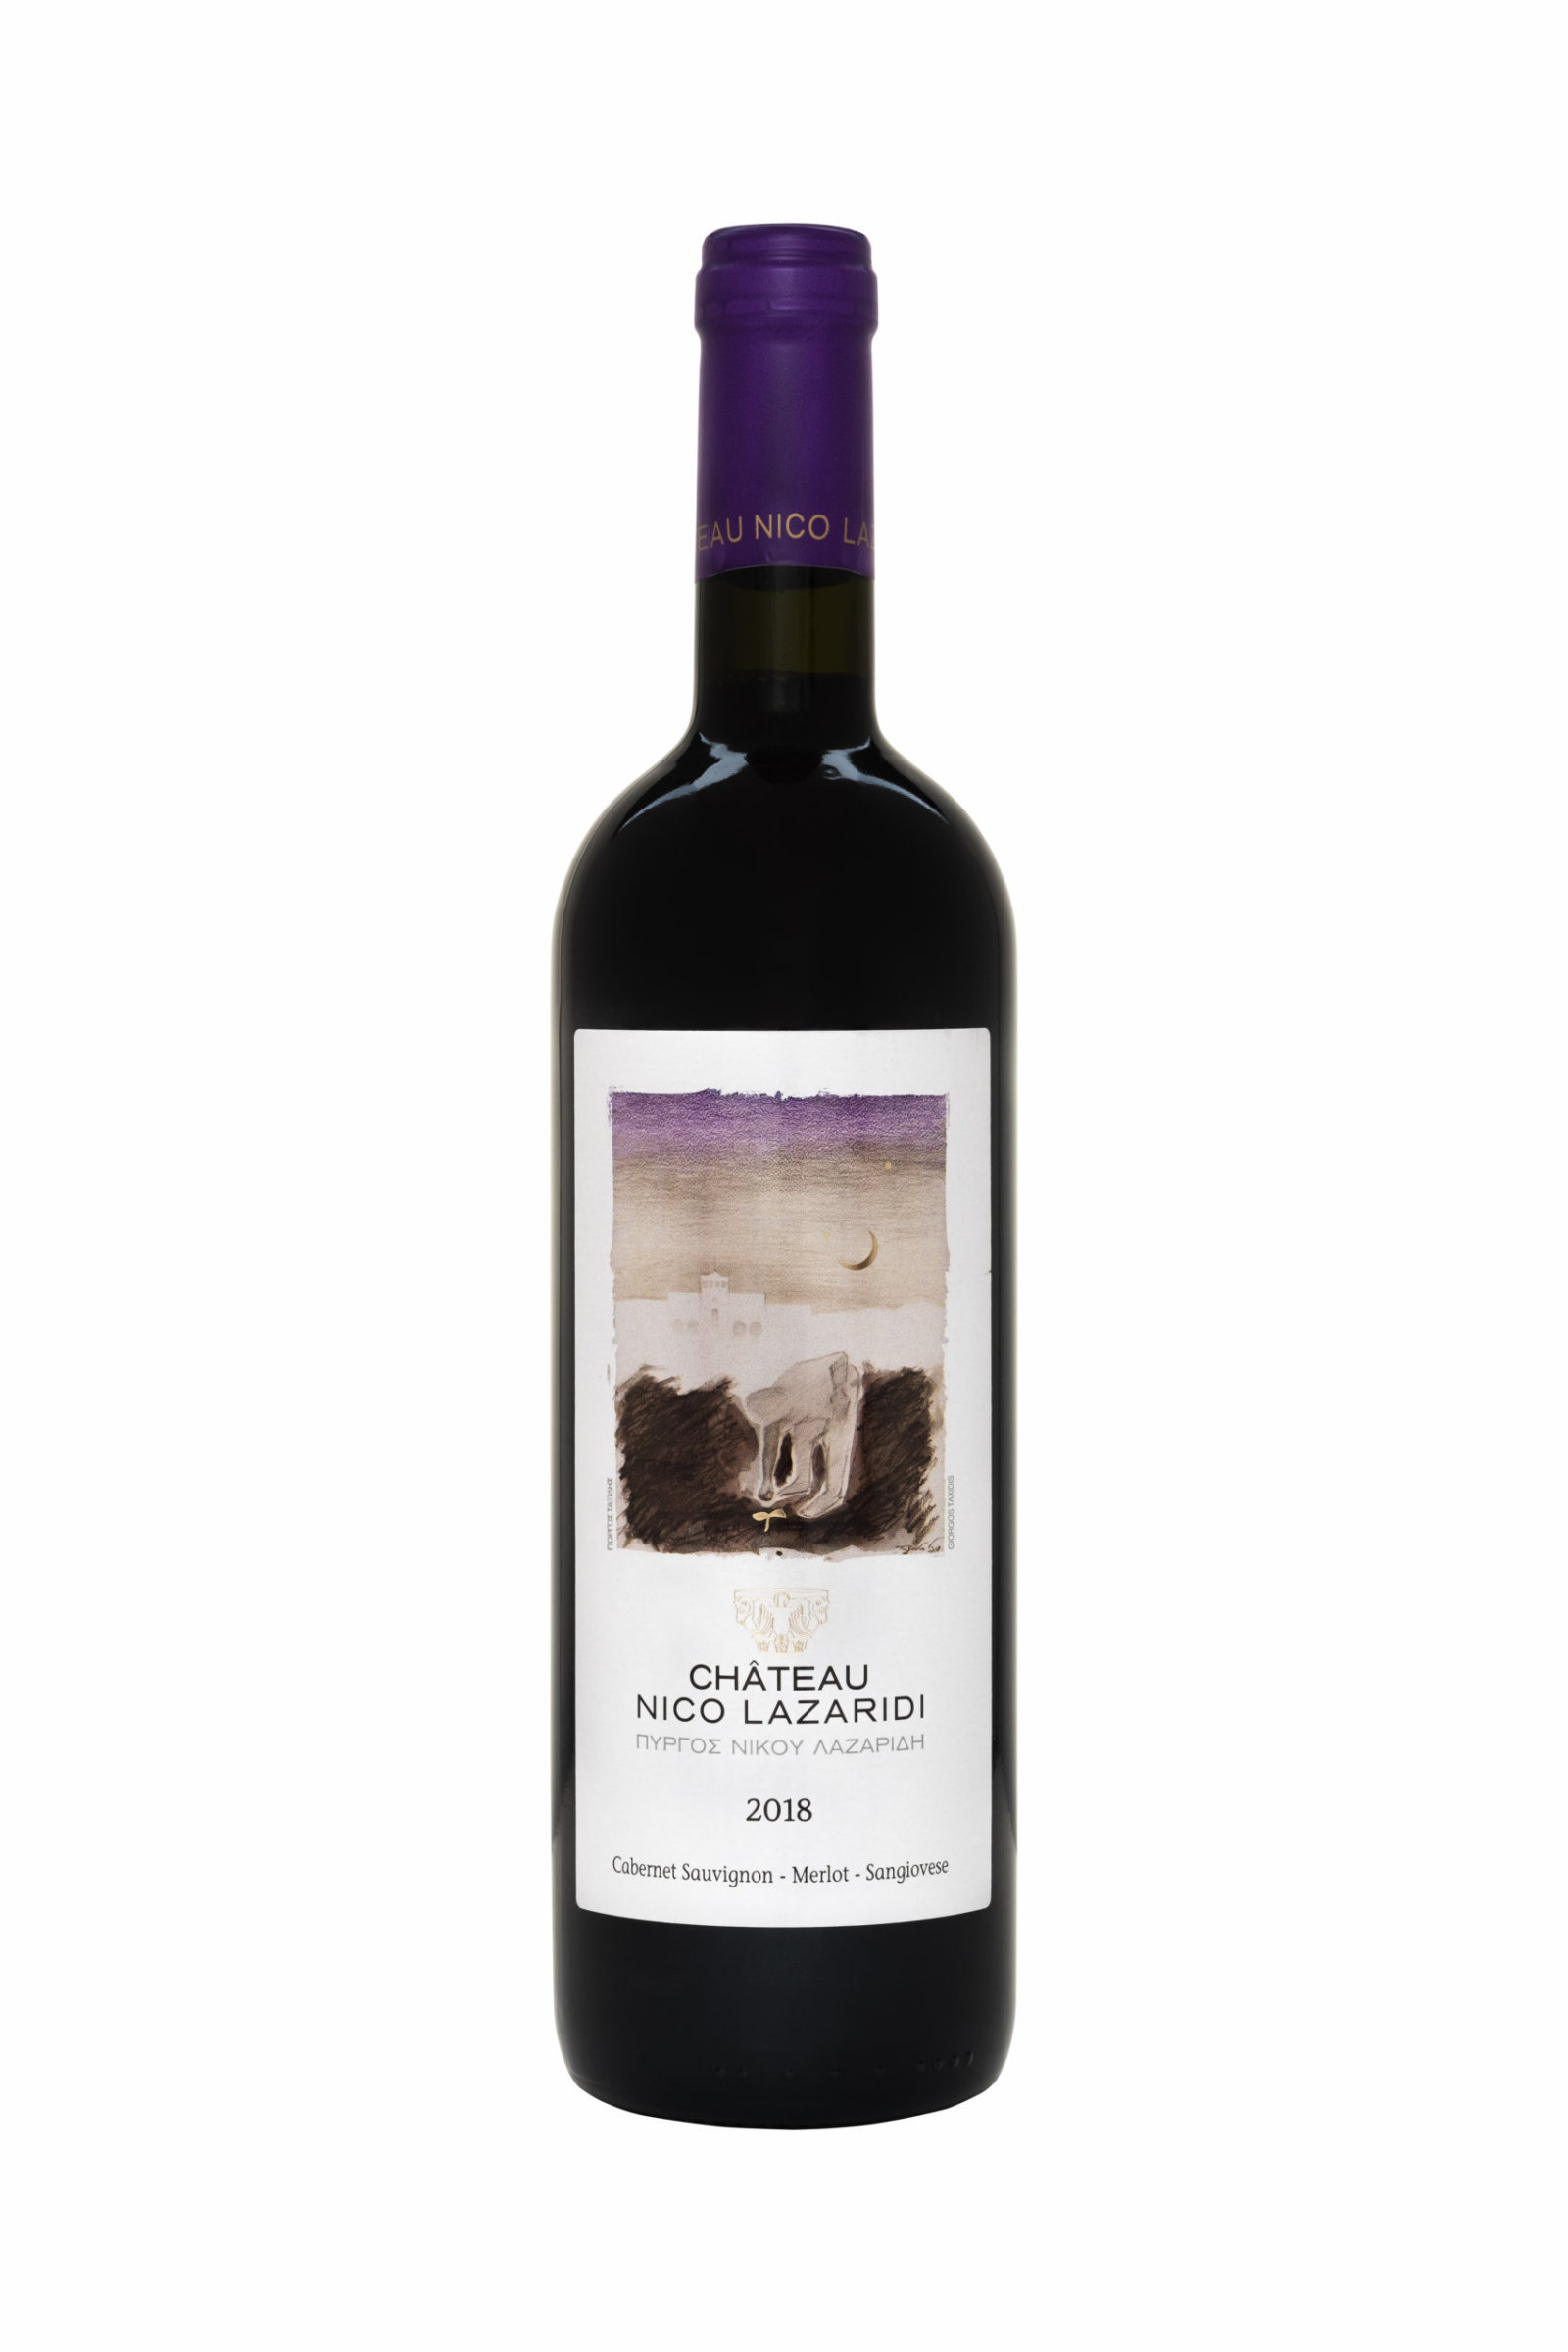 A bottle of Chateau Nico Lazaridi Red 2018